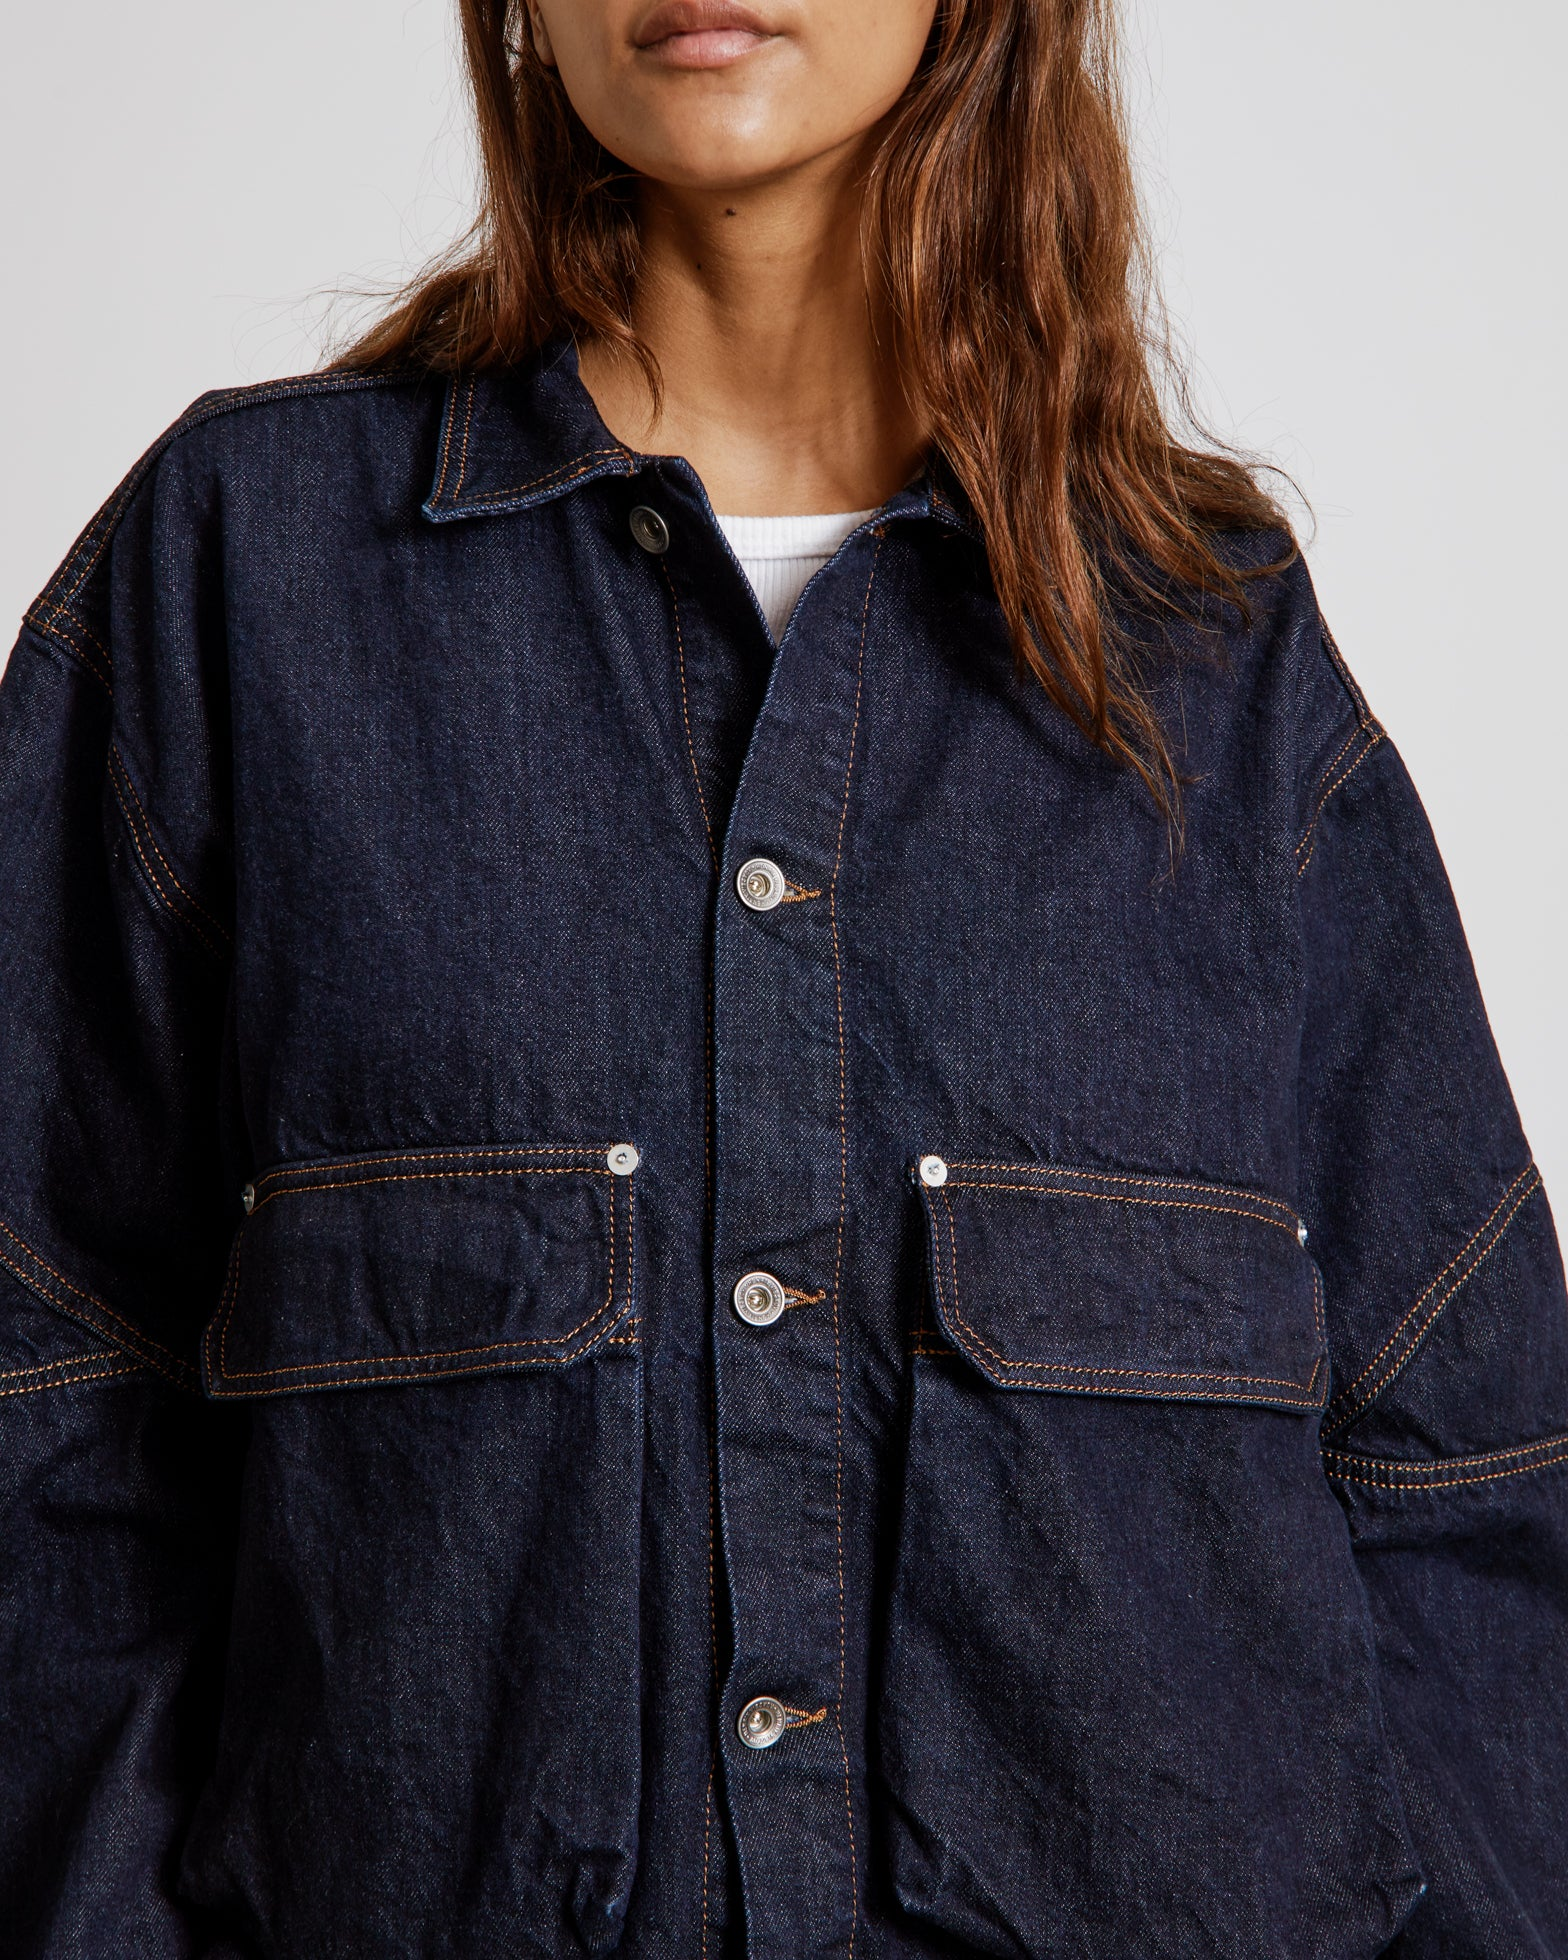 Match Box Jacket in Indigo